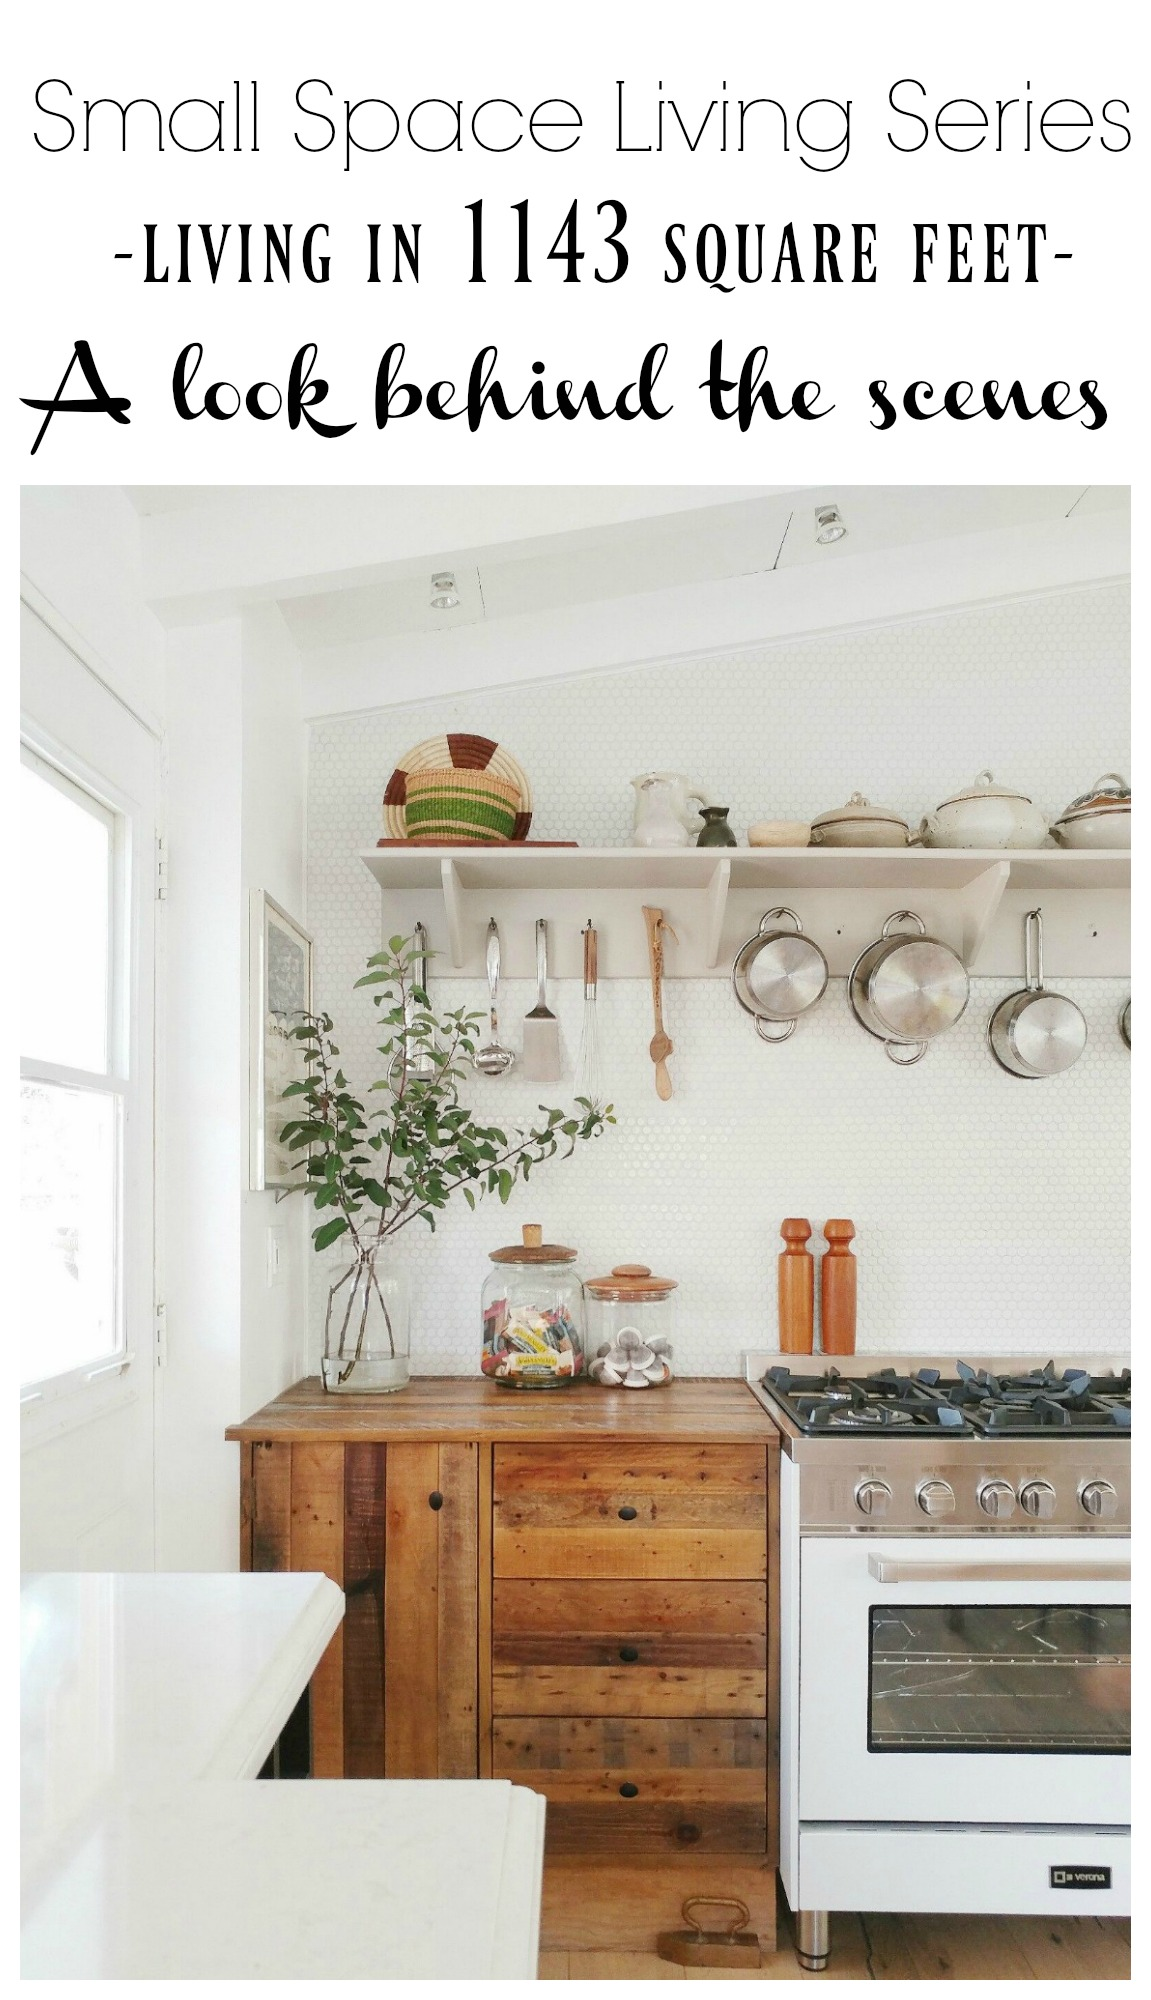 Small Space Living Series- 1143 square feet with The Ranch ... on small kitchen design for cabin, kitchen remodel ideas for ranch house, small ranch kitchen remodel ideas,